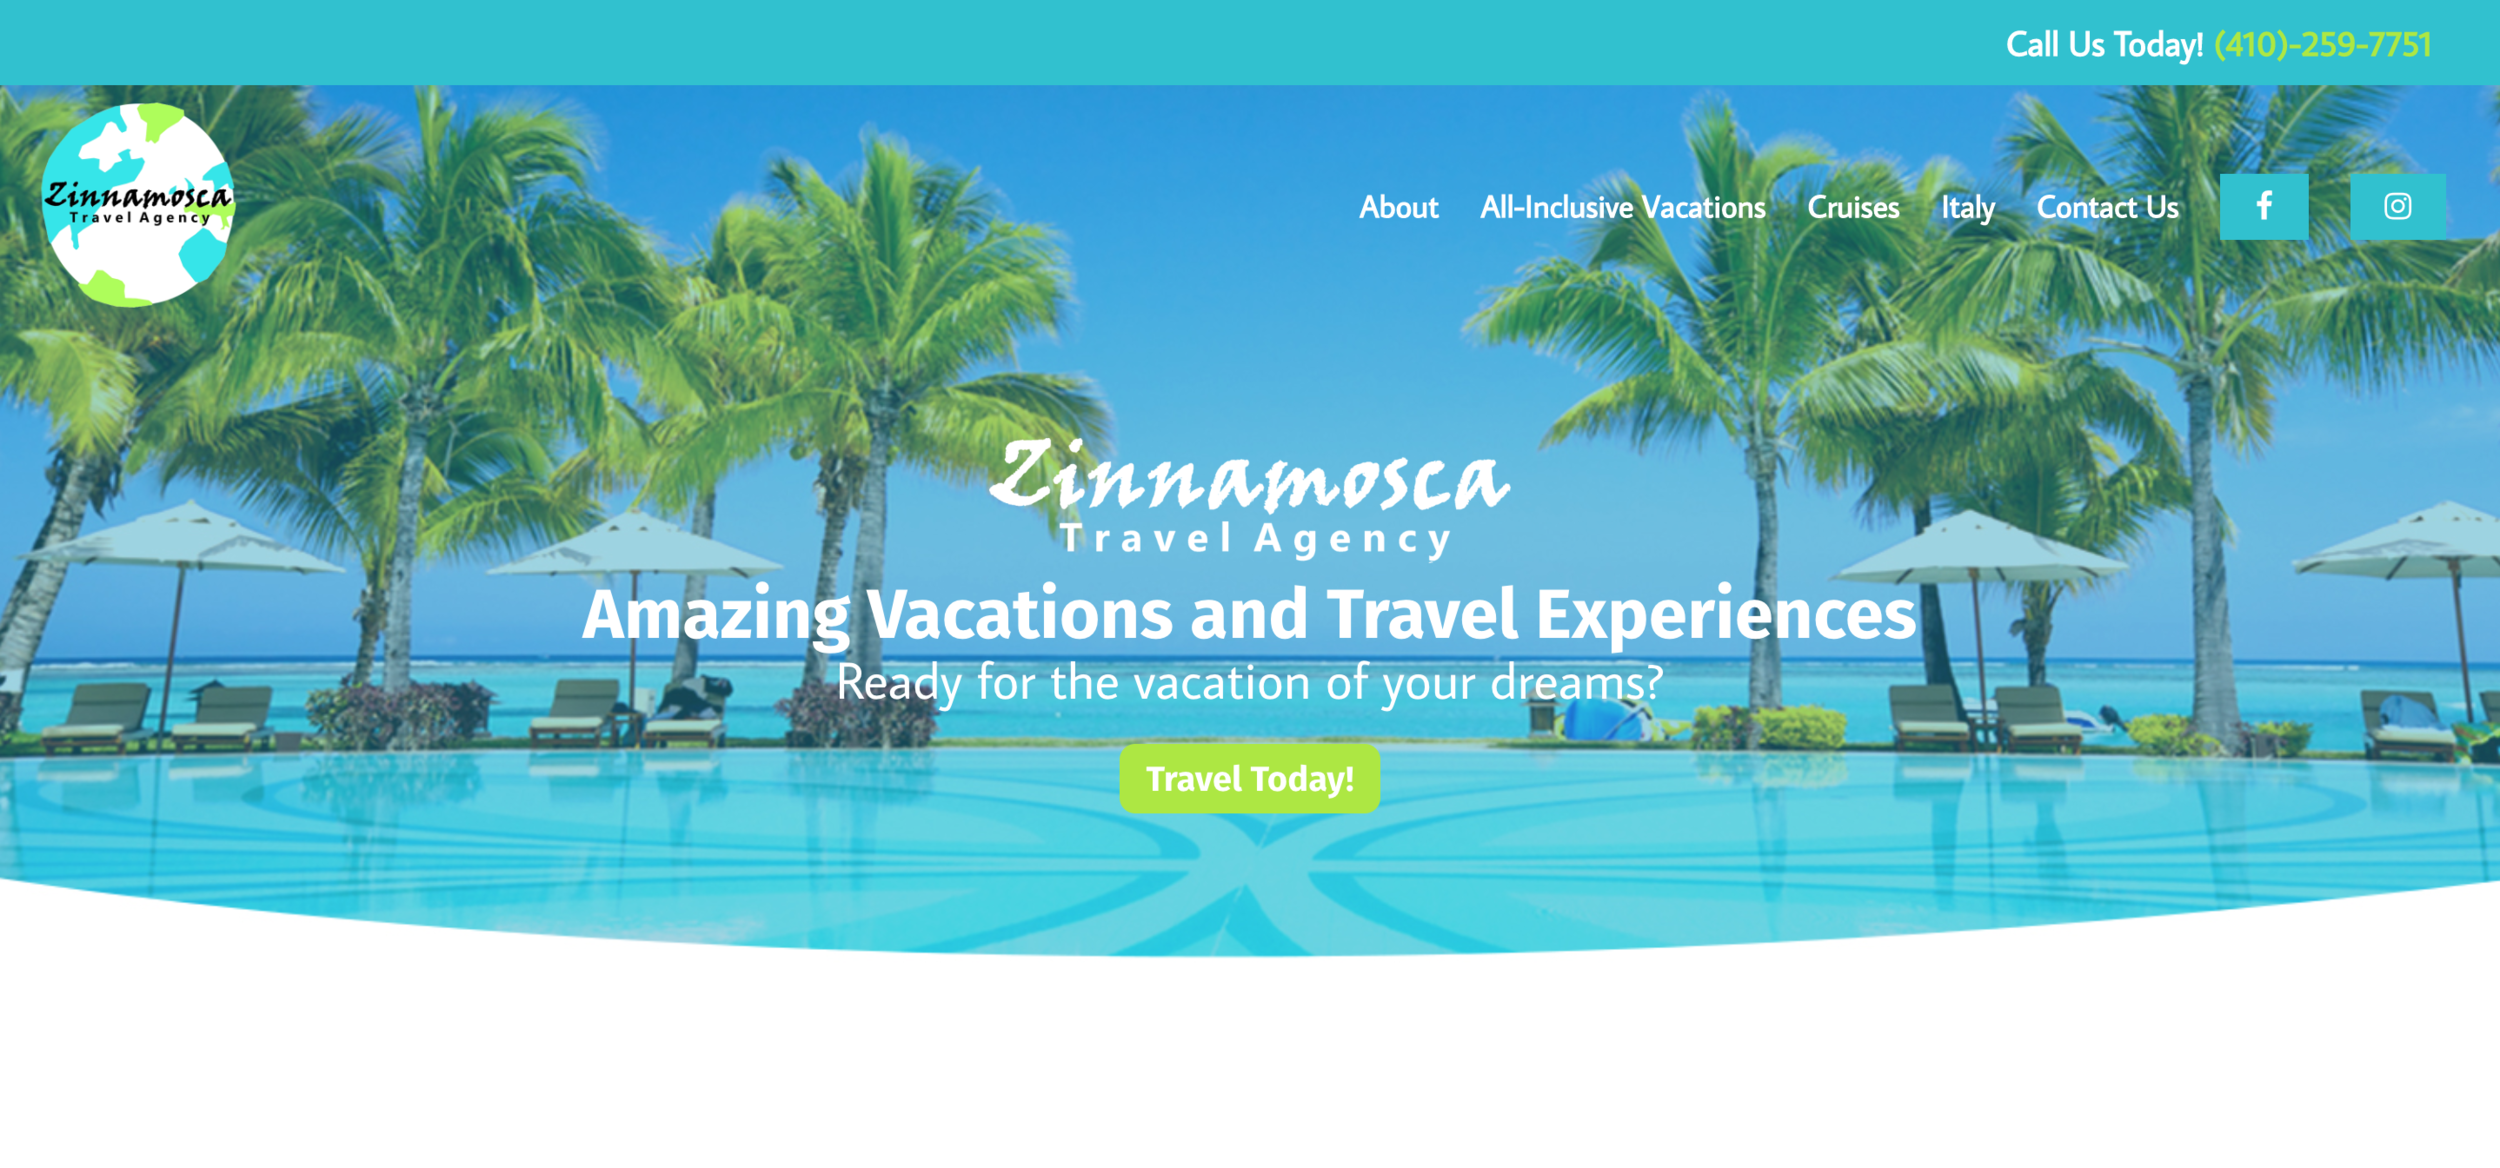 Zinnamosca Travel